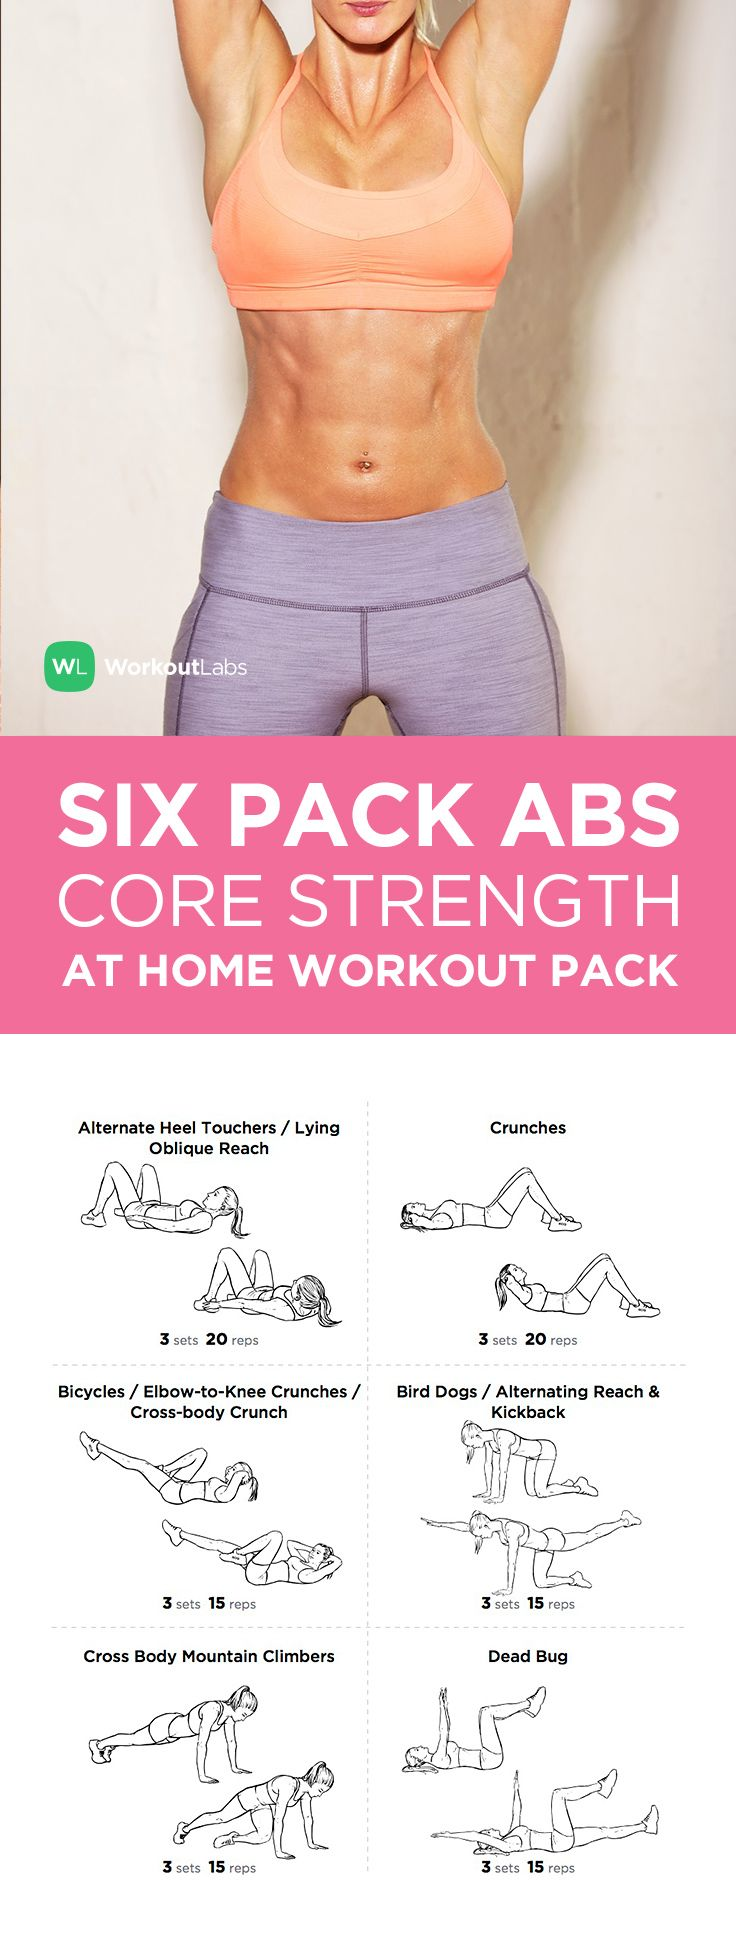 Visit WorkoutLabs Workout Packs Six Pack Abs Core Strength At Home For Men Women To Download This